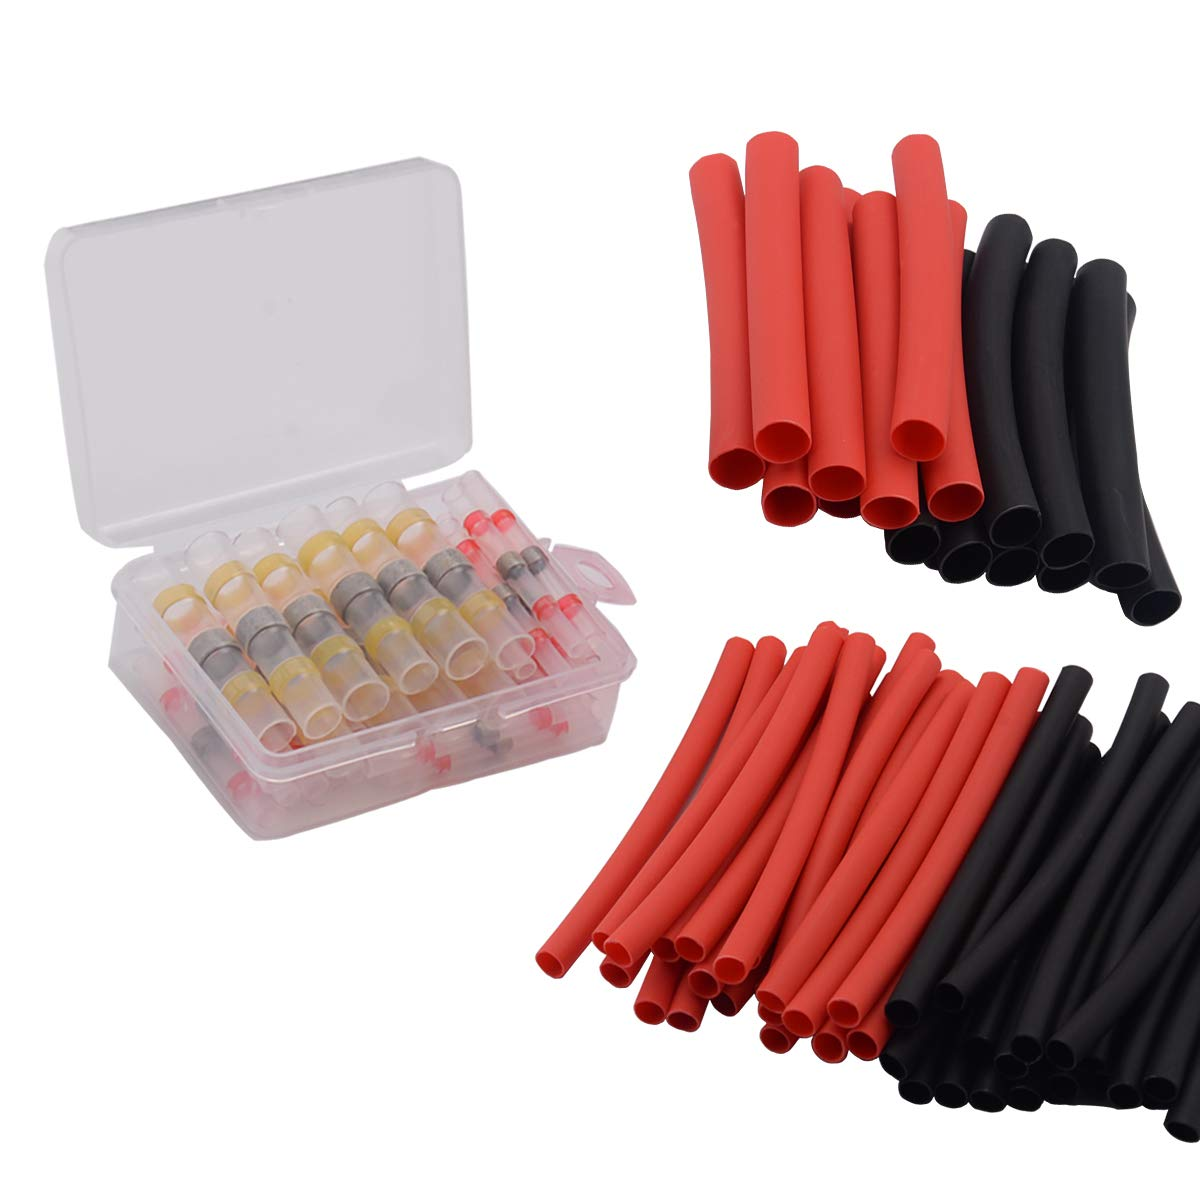 50pcs Solder Seal Heat Shrink Butt Connectors Terminals and 60pcs 3:1 Solder Heat Shrink Tubing, Waterproof Electrical Wire Connectors Kit Fits 12-10, 22-18, 16-14 AWG Wire, by Brightfour